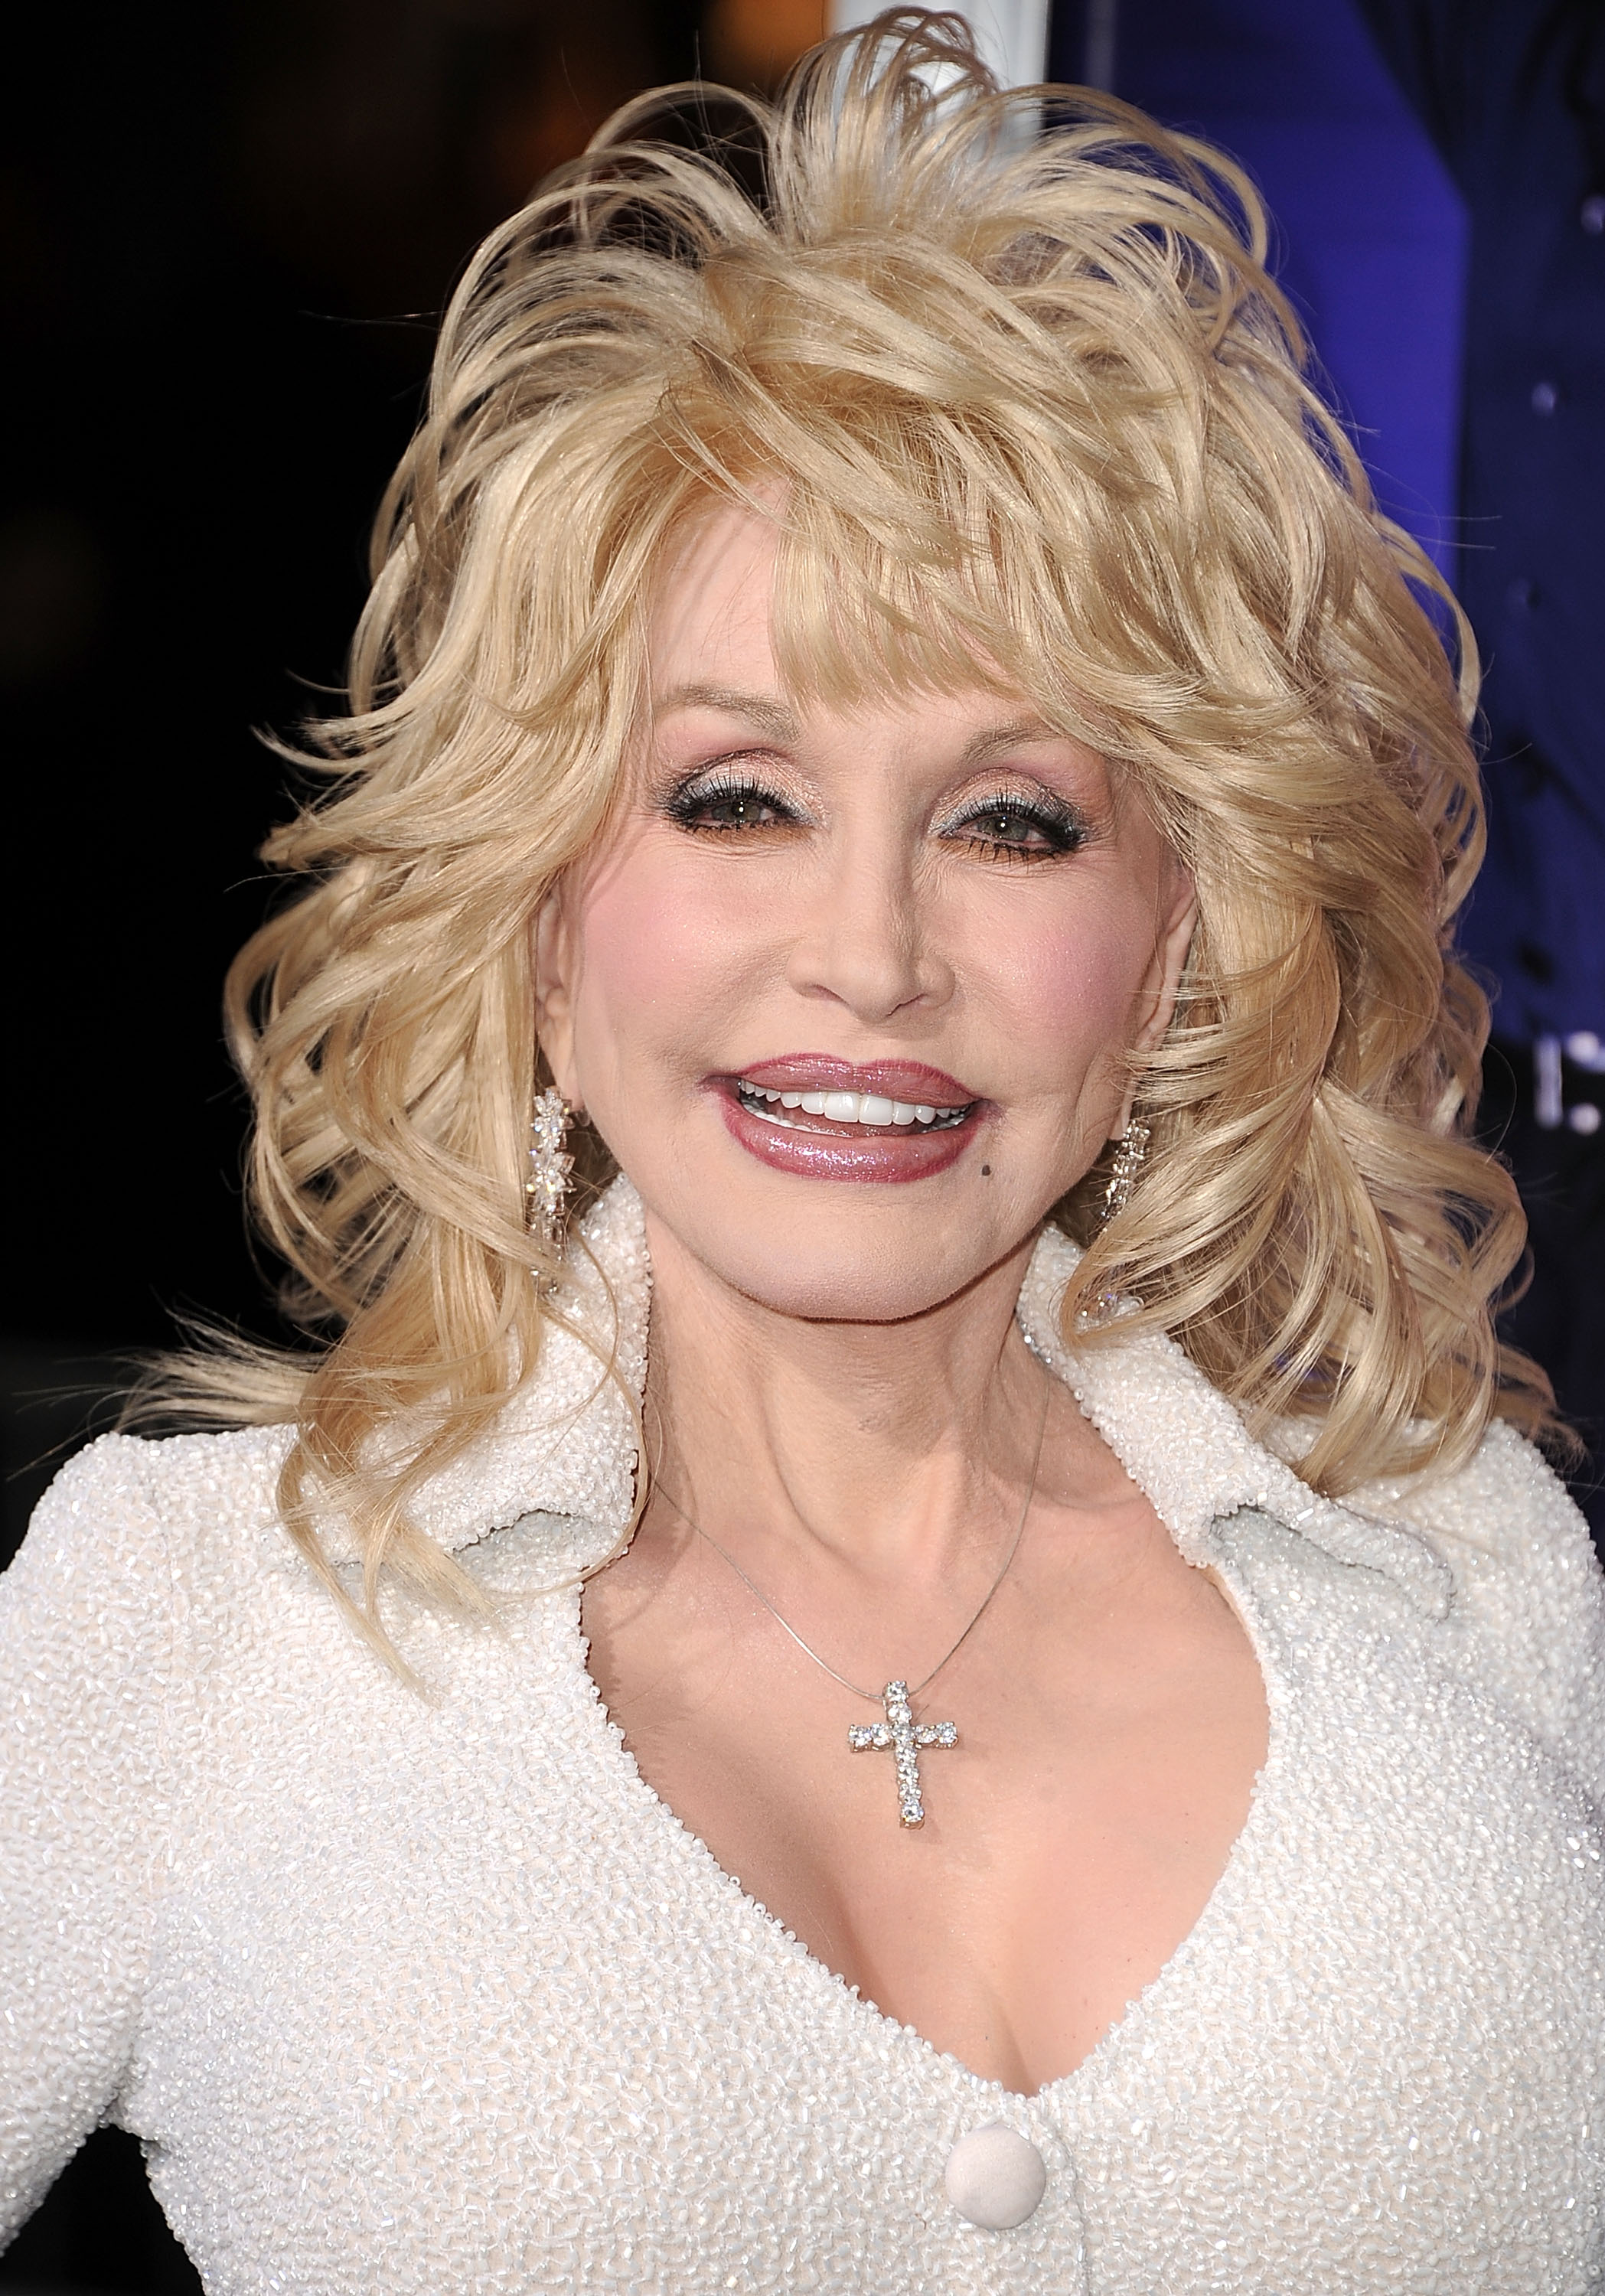 Dolly Parton S Dollywood Sued After Woman Suffers Brain Injury On Ride Closer Weekly